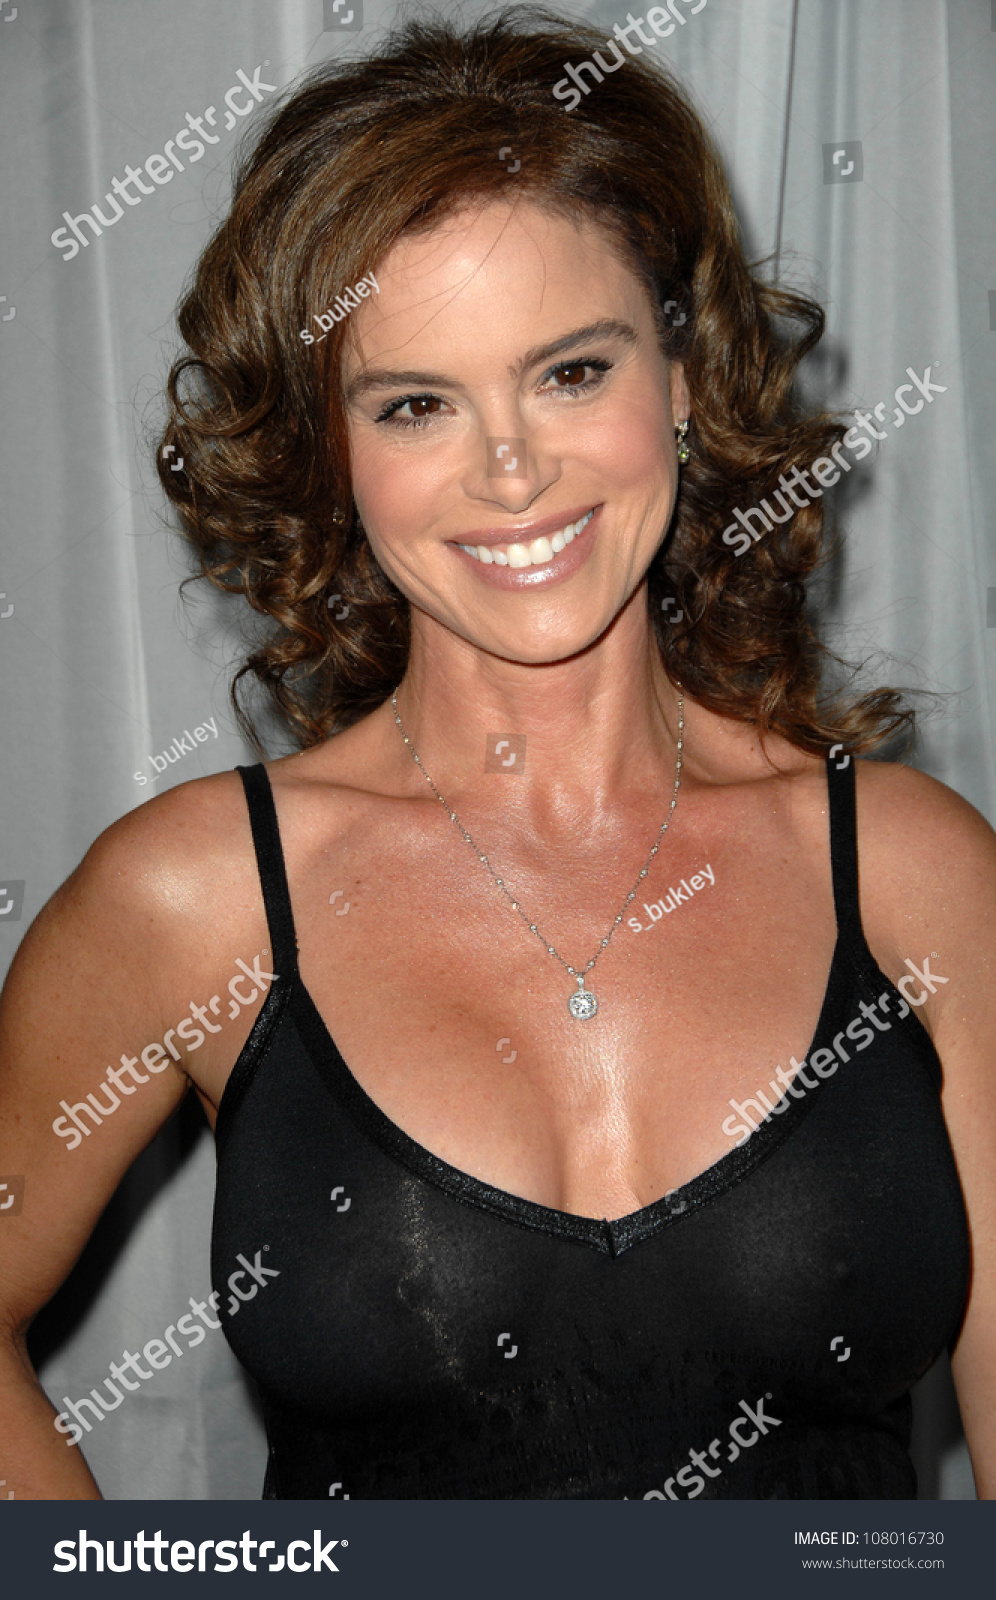 Instagram Betsy Russell nude (39 foto and video), Tits, Sideboobs, Twitter, braless 2020